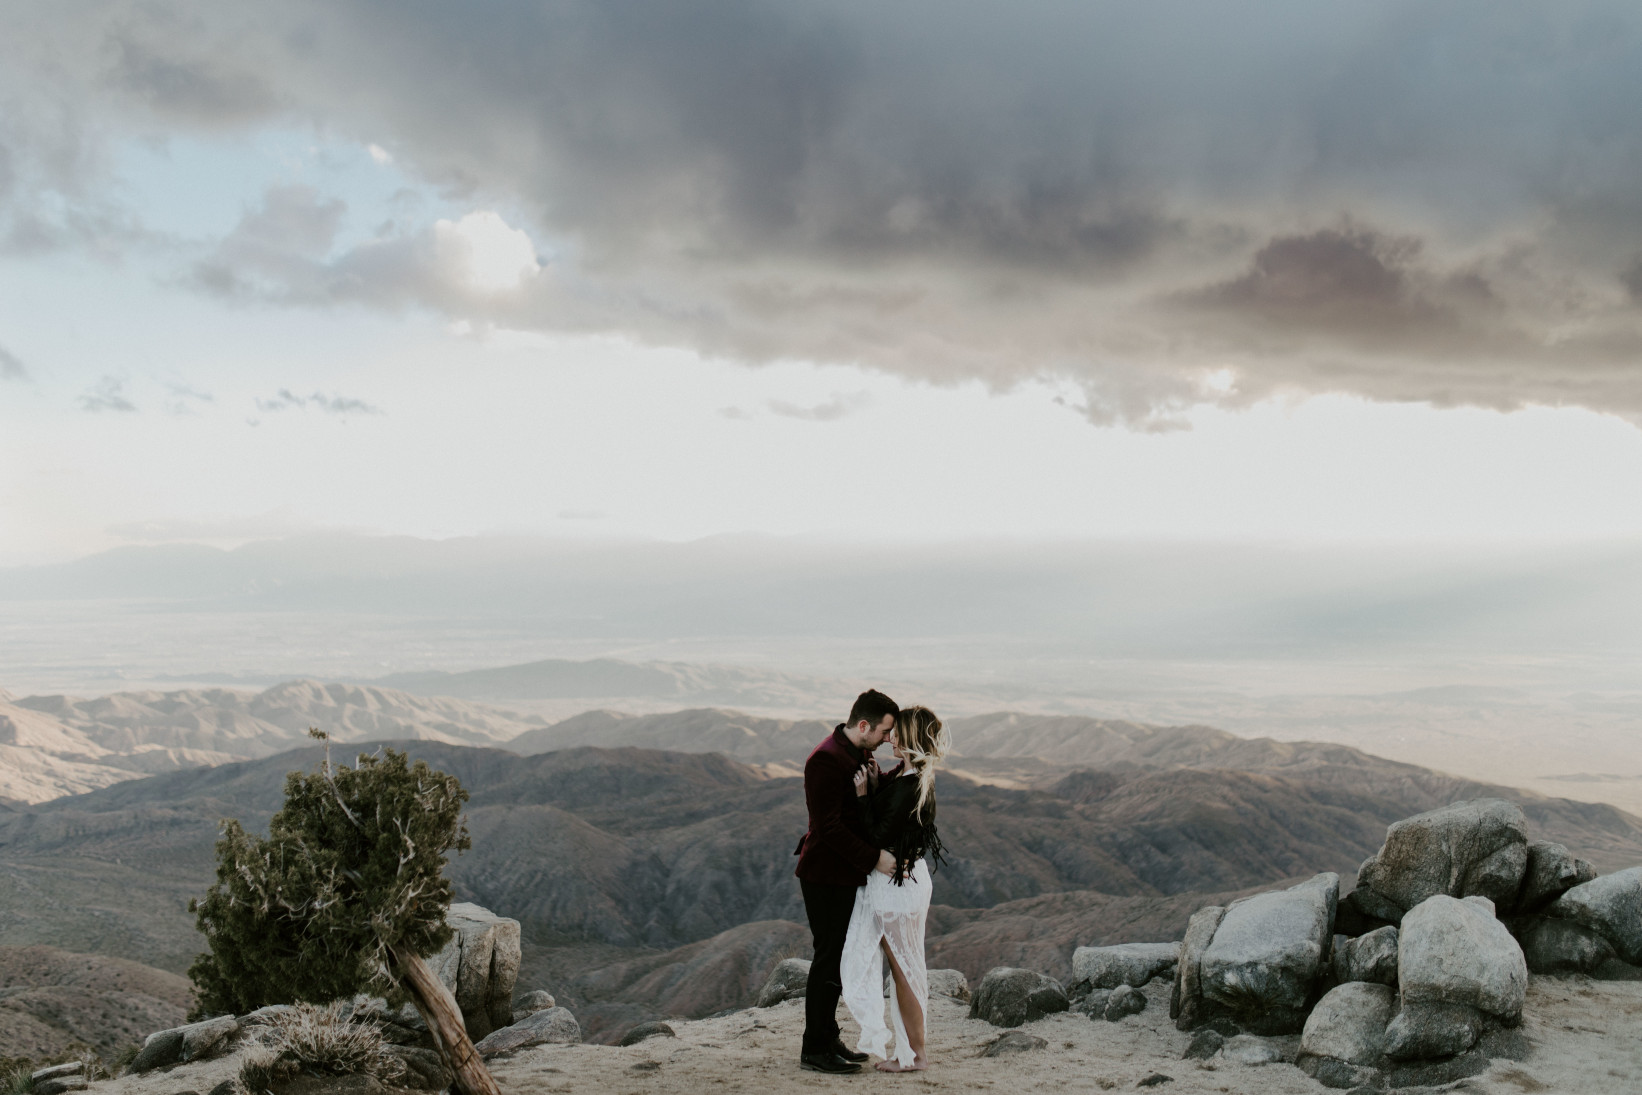 Jeremy and Alyssa face each other. Elopement wedding photography at Joshua Tree National Park by Sienna Plus Josh.